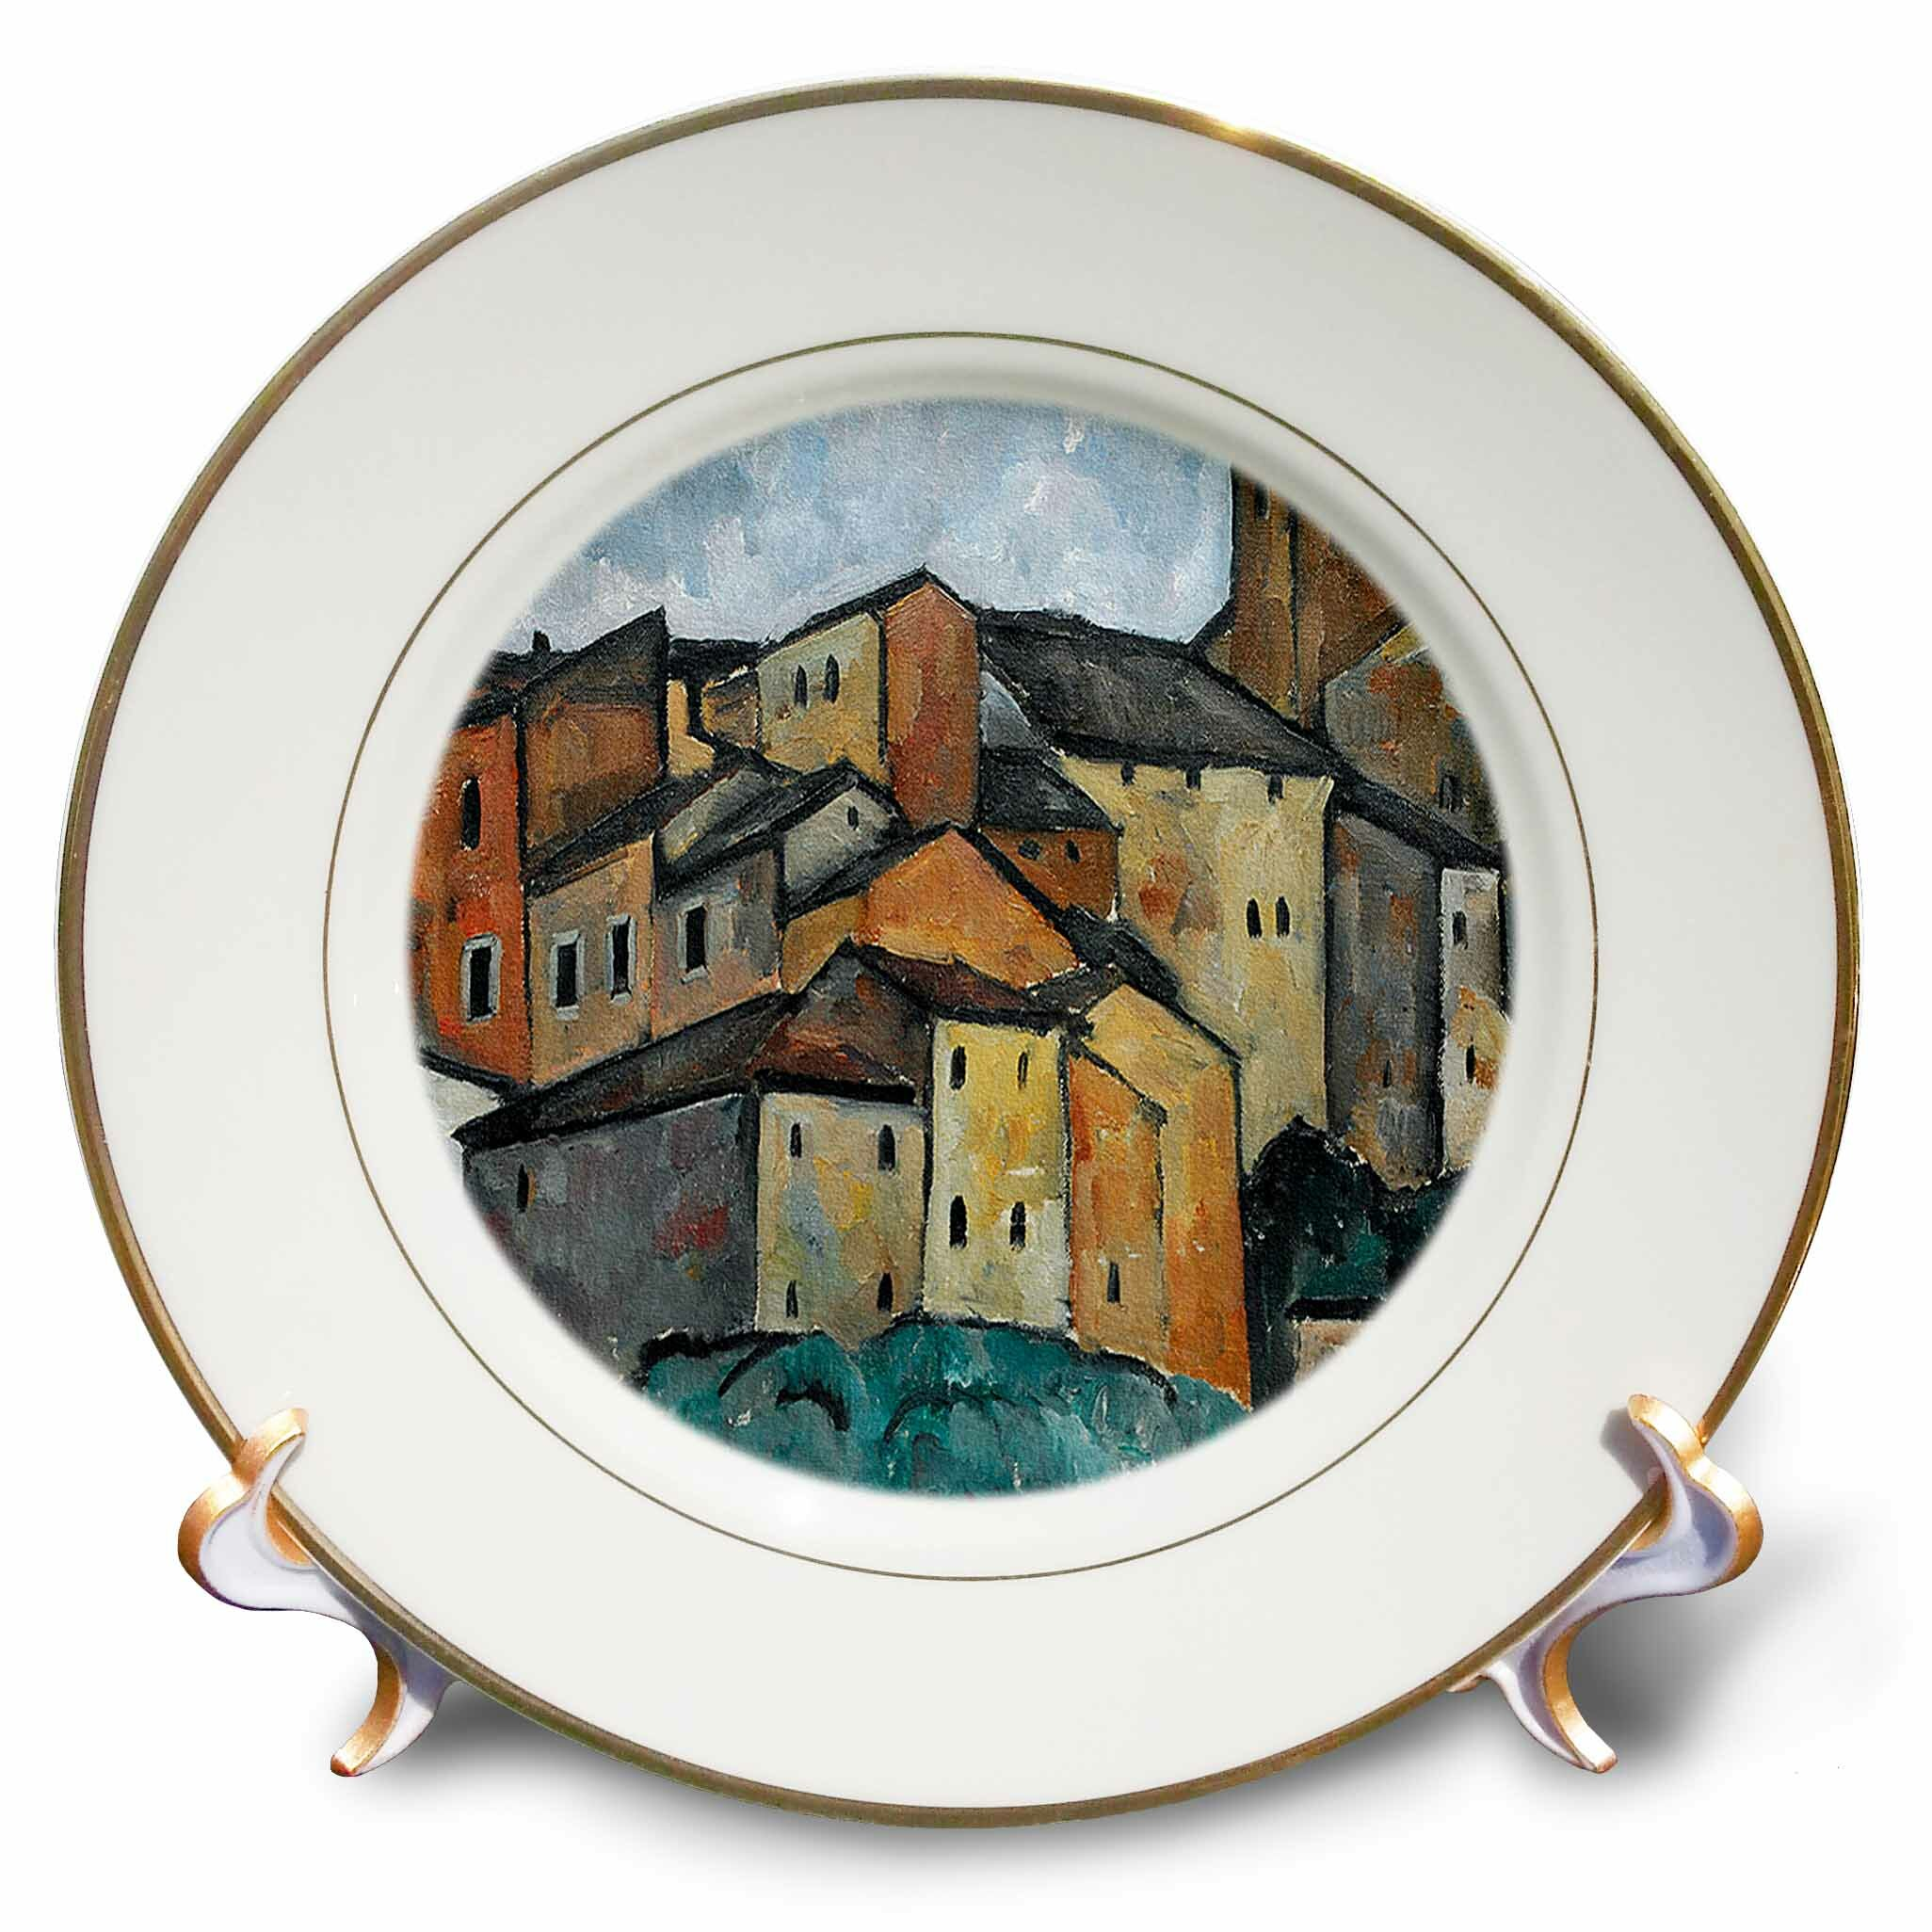 East Urban Home 1913 San Gimignano Italy Painting By Alexander Kanoldt Porcelain Decorative Plate Wayfair